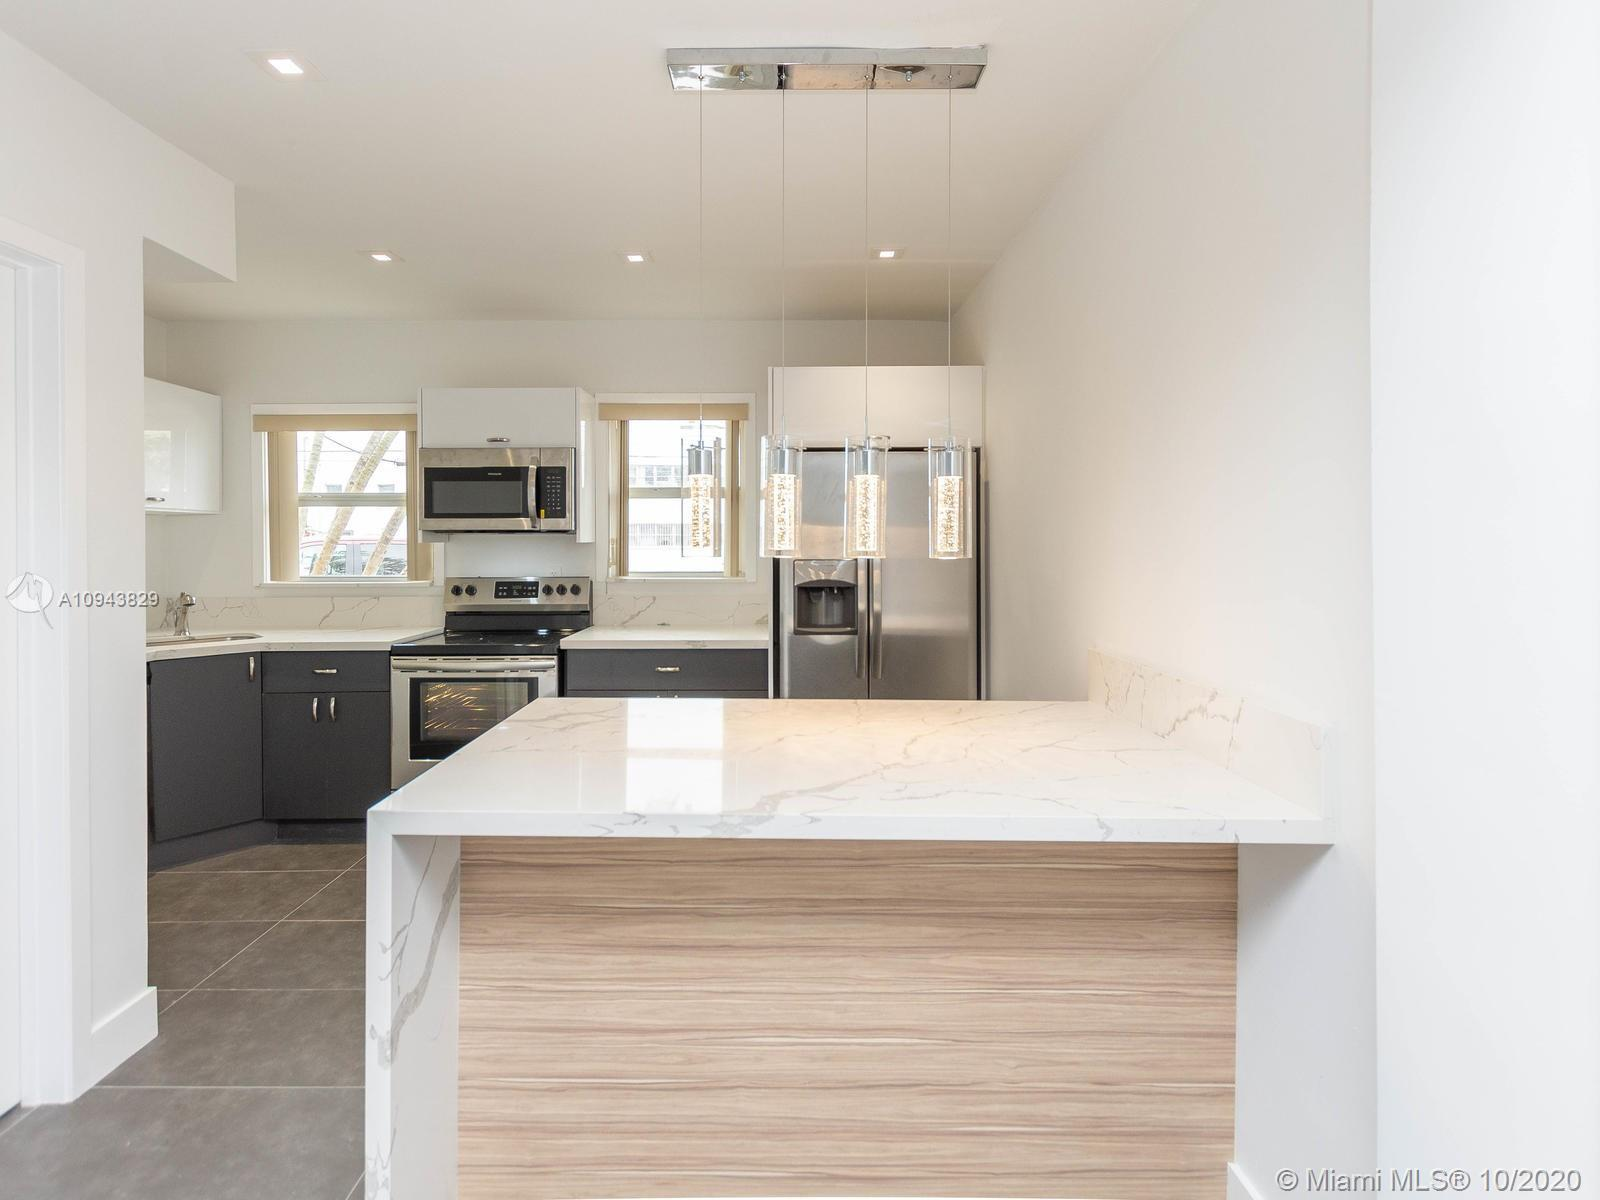 This modern and stylish 880 sqft, 1 bedroom, 1 full bath, two-story condo. Situated near the highly